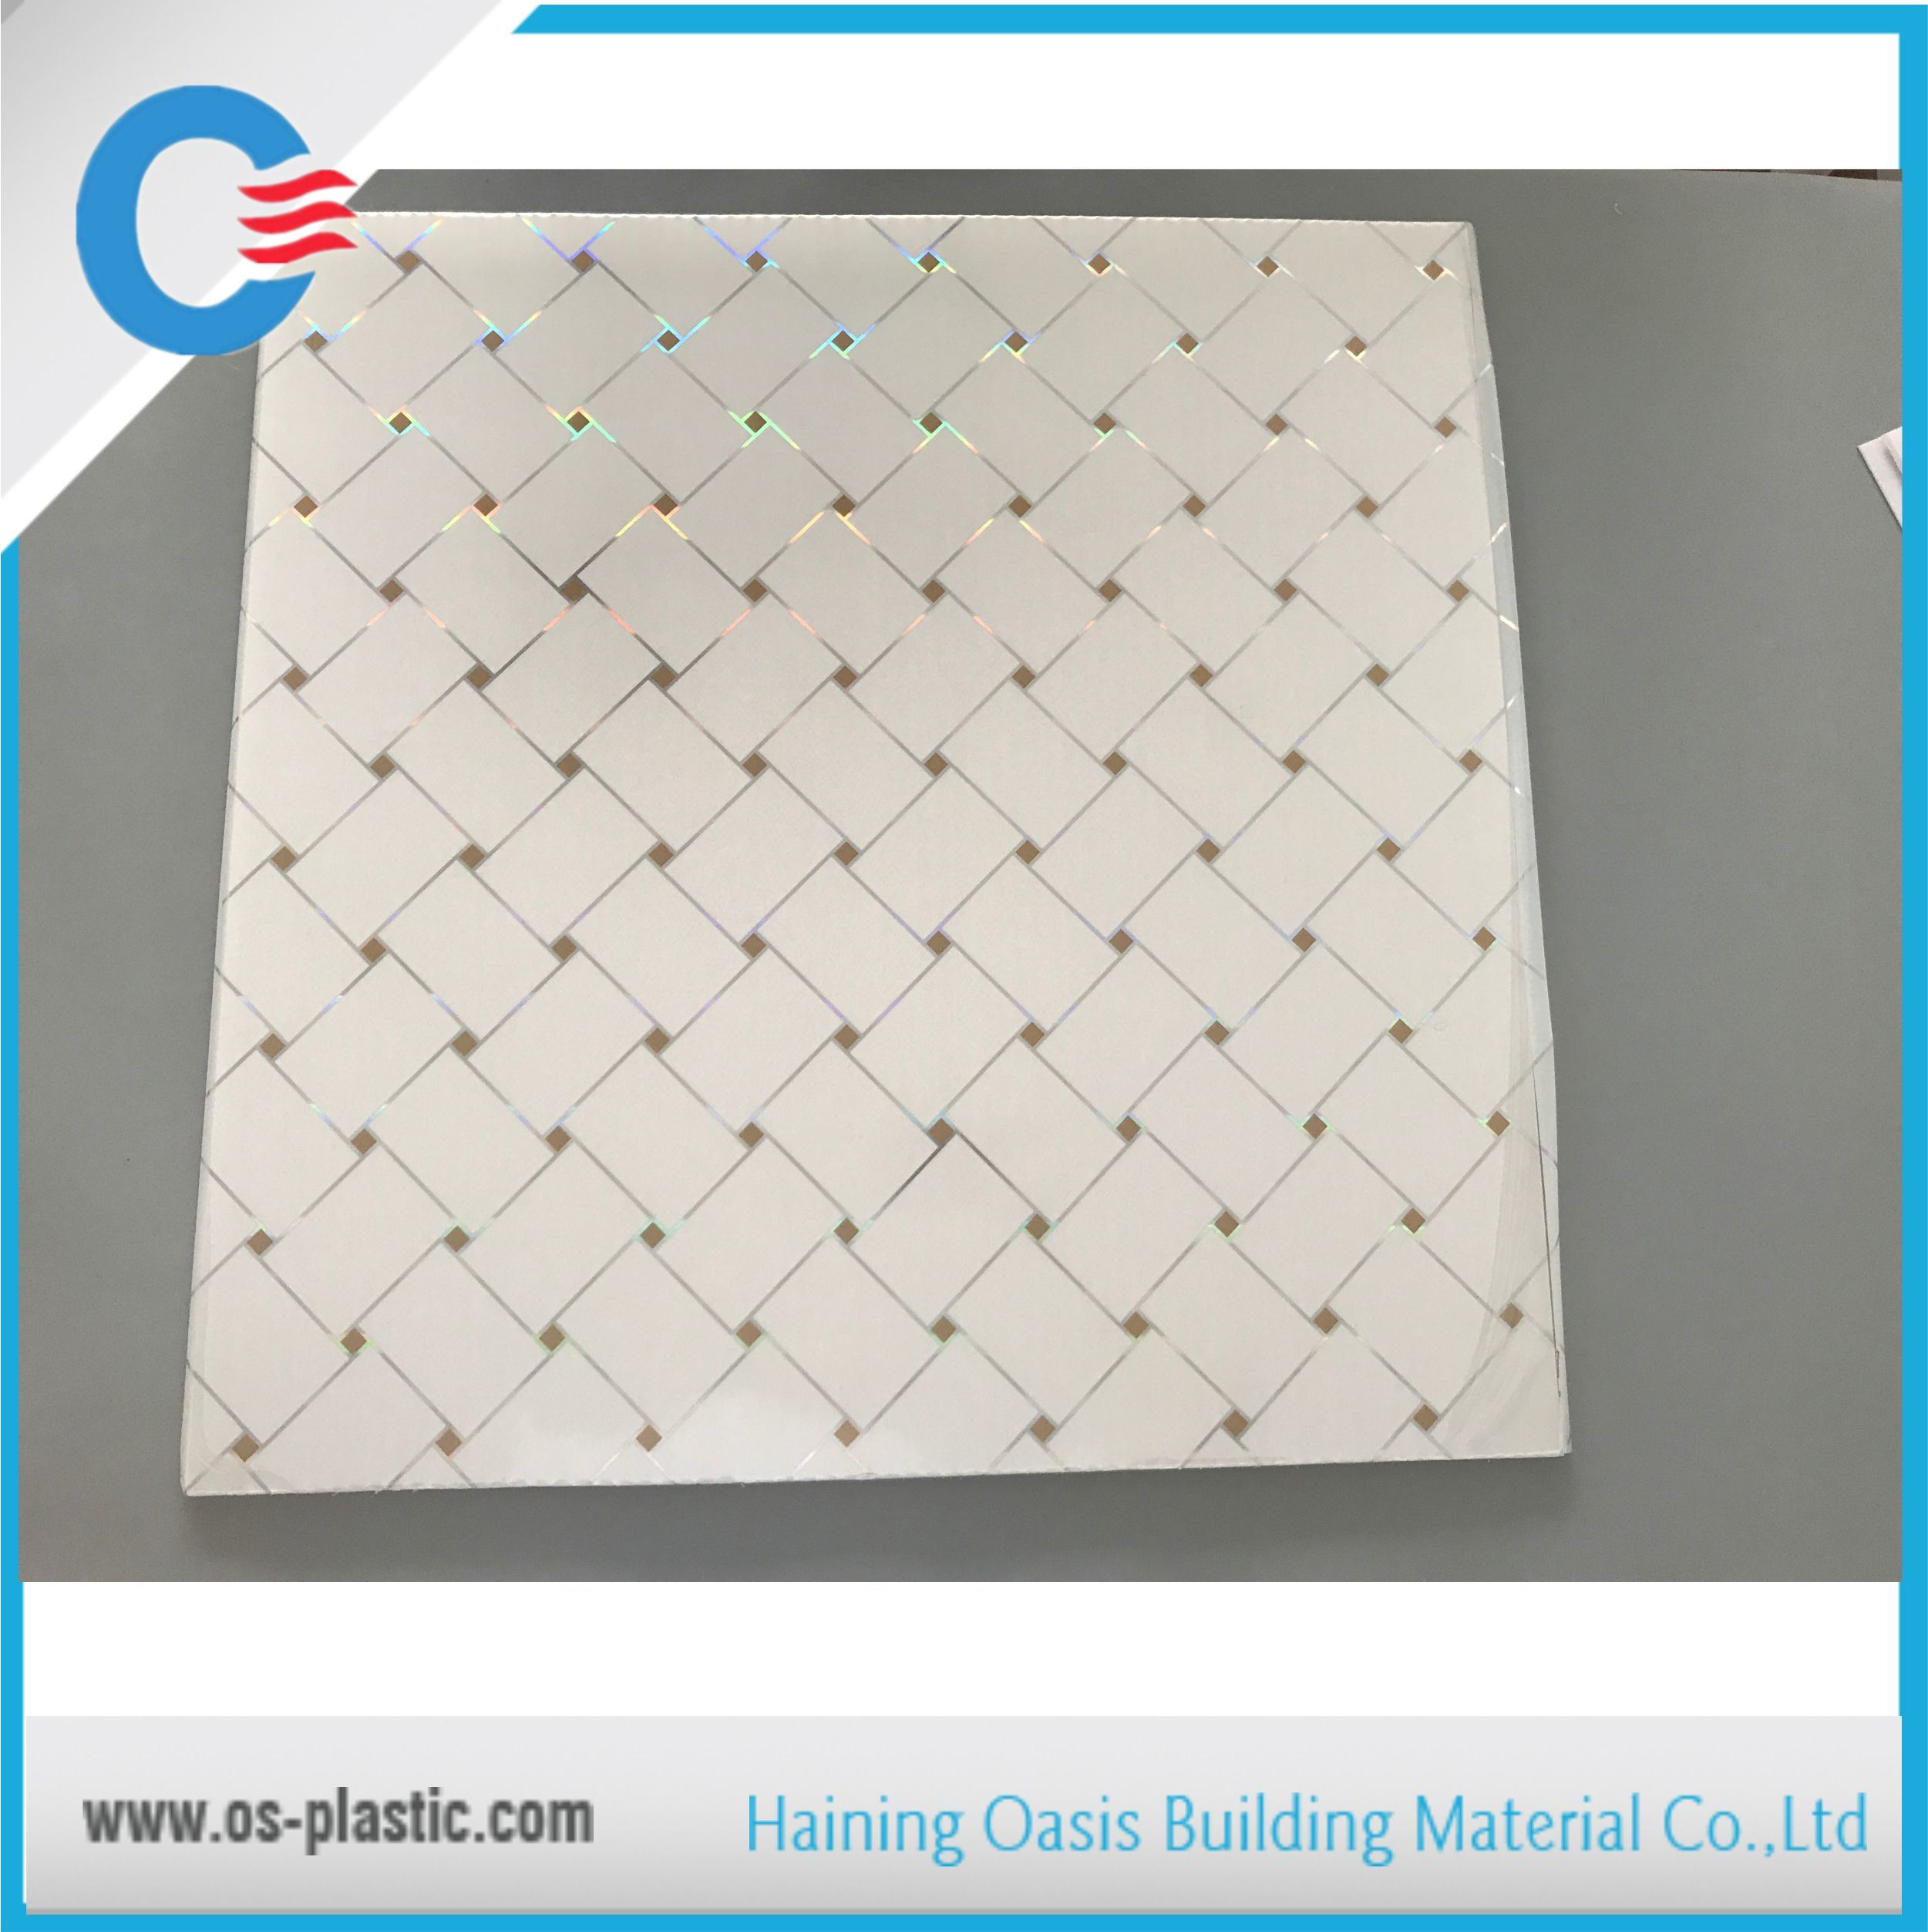 color acoustical ceiling raised panels ceilings decorative tiles embossed with affordable options traditional solid for white tile grids provide designs and these